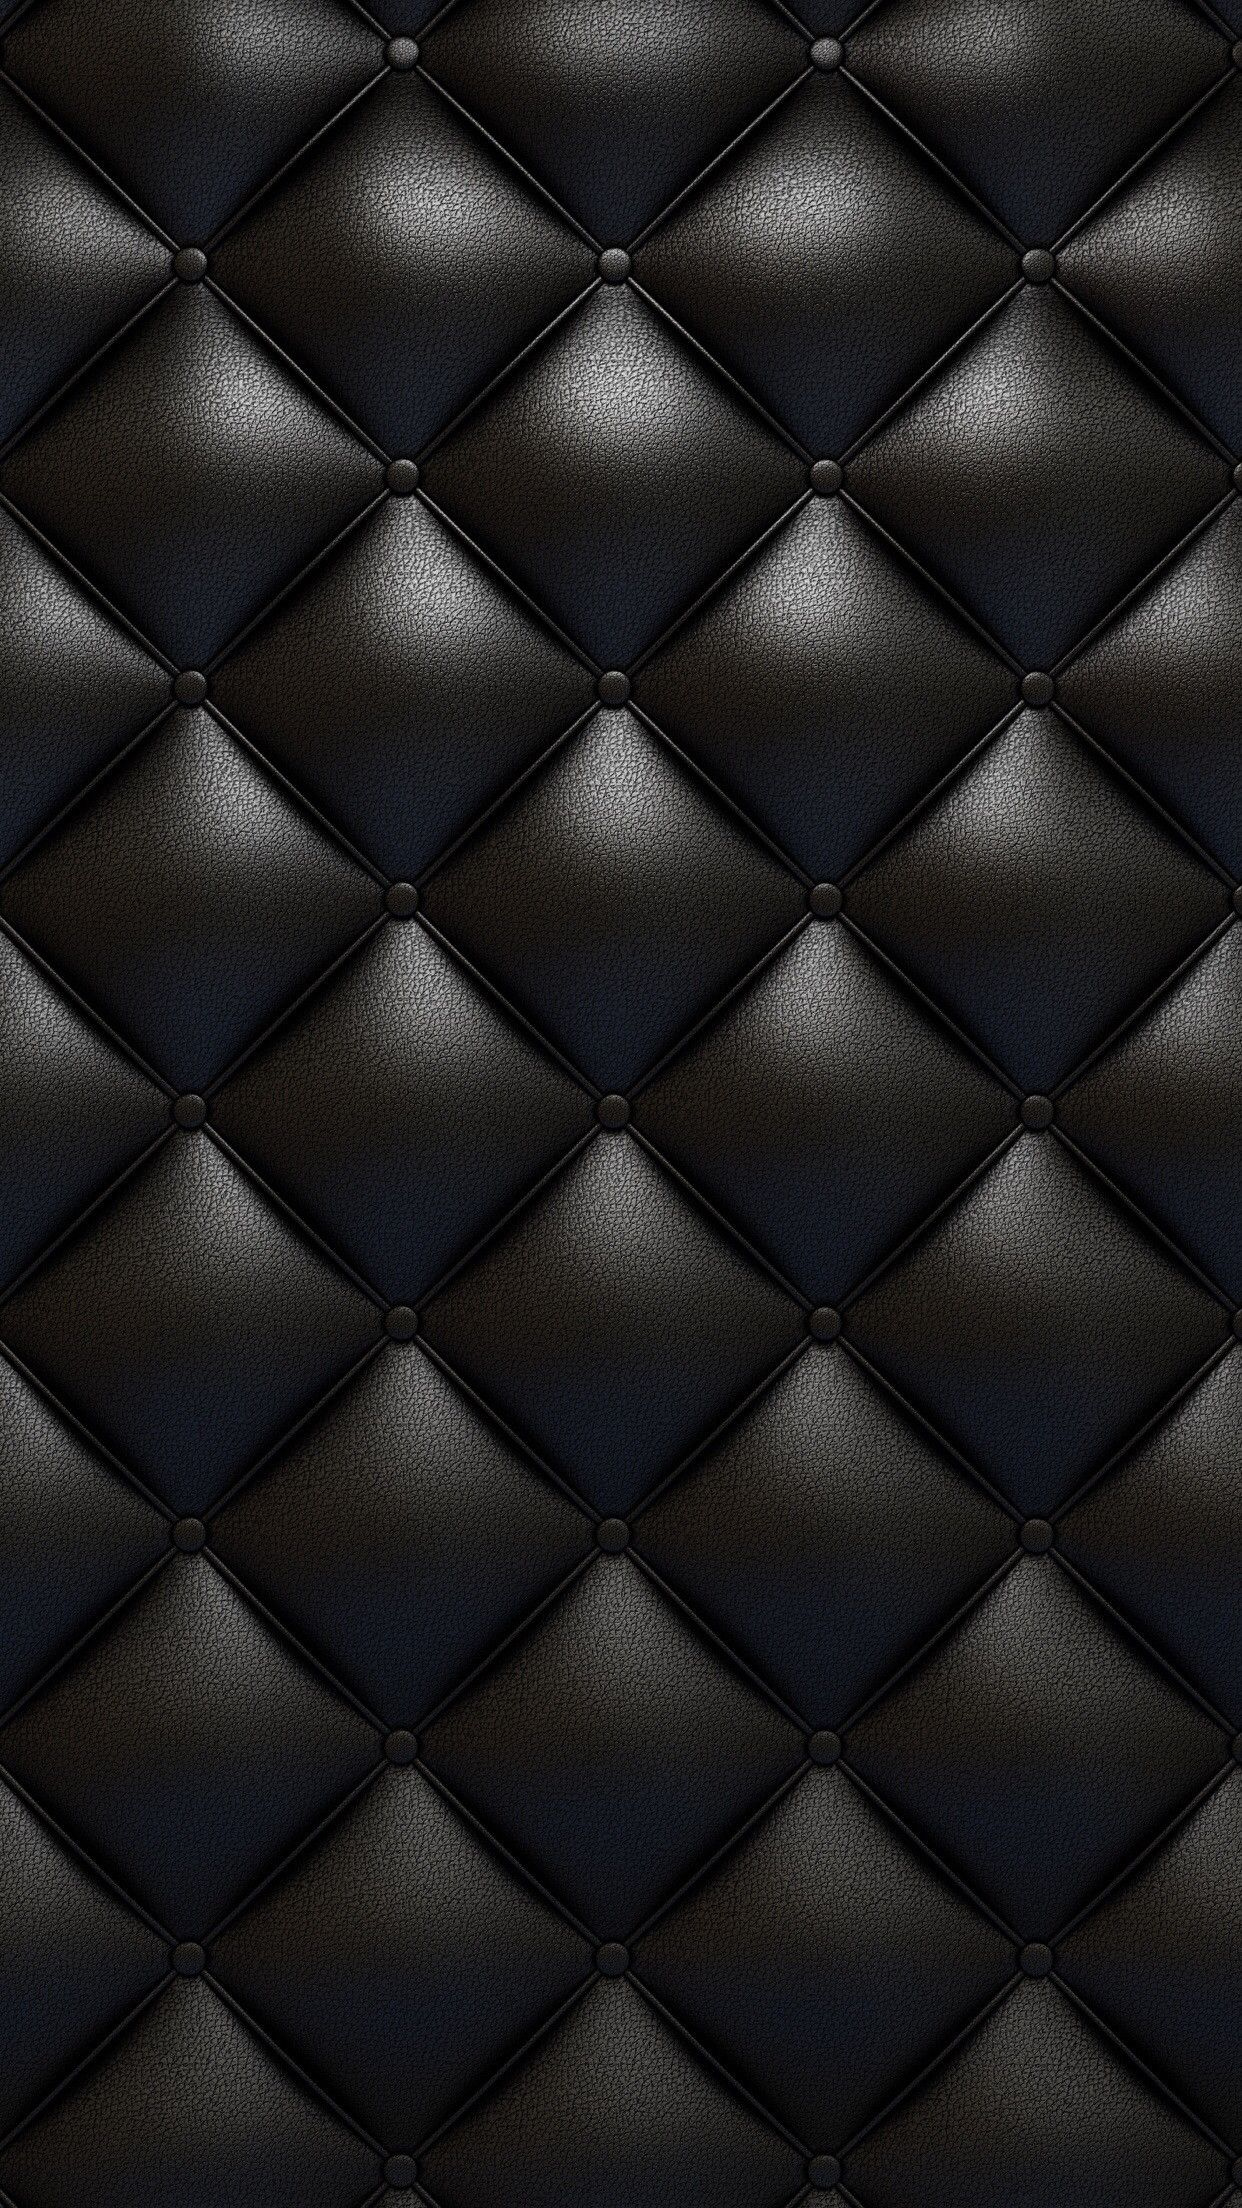 1242x2208 53+ Brown Leather Wallpapers on WallpaperPlay